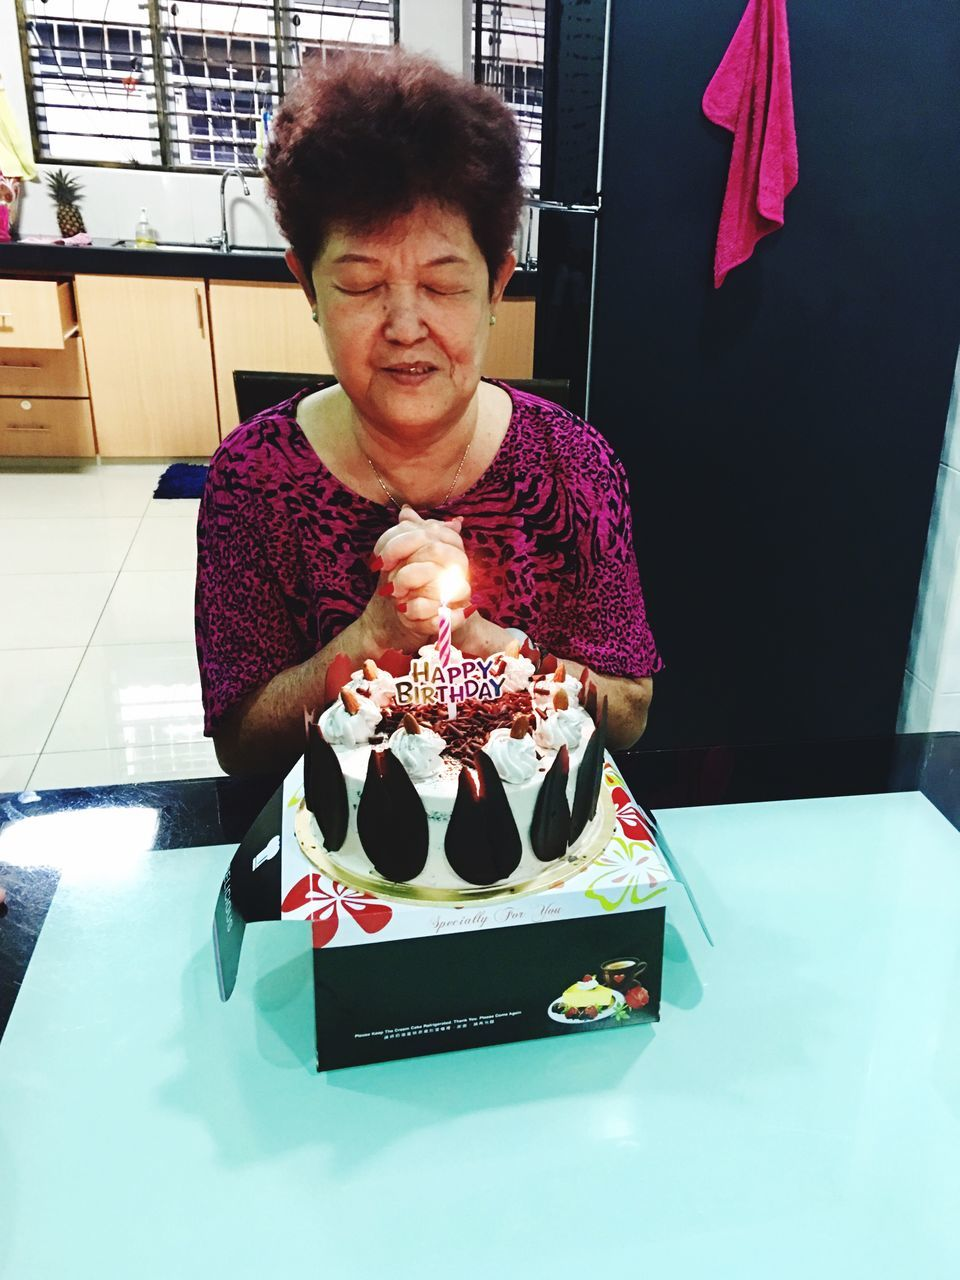 birthday cake, birthday candles, indoors, food and drink, food, casual clothing, birthday, front view, one person, real people, table, sitting, sweet food, celebration, unhealthy eating, young adult, freshness, day, people